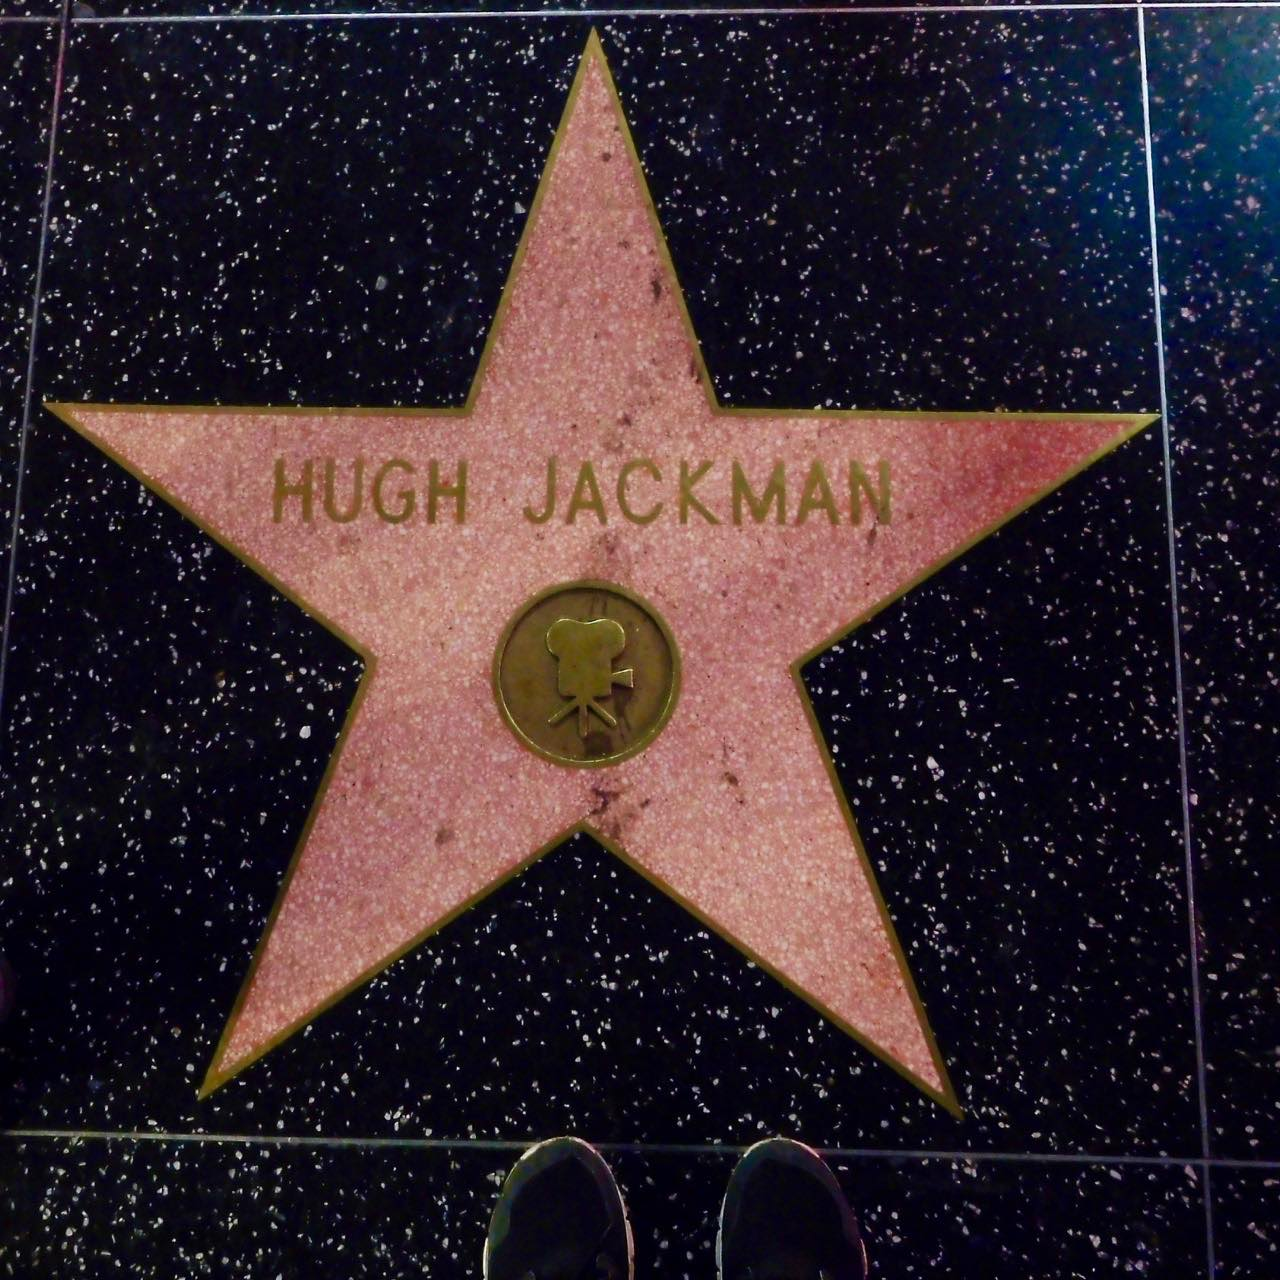 3 Days in Hollywood - Hollywood Boulevard Hugh Jackman Star